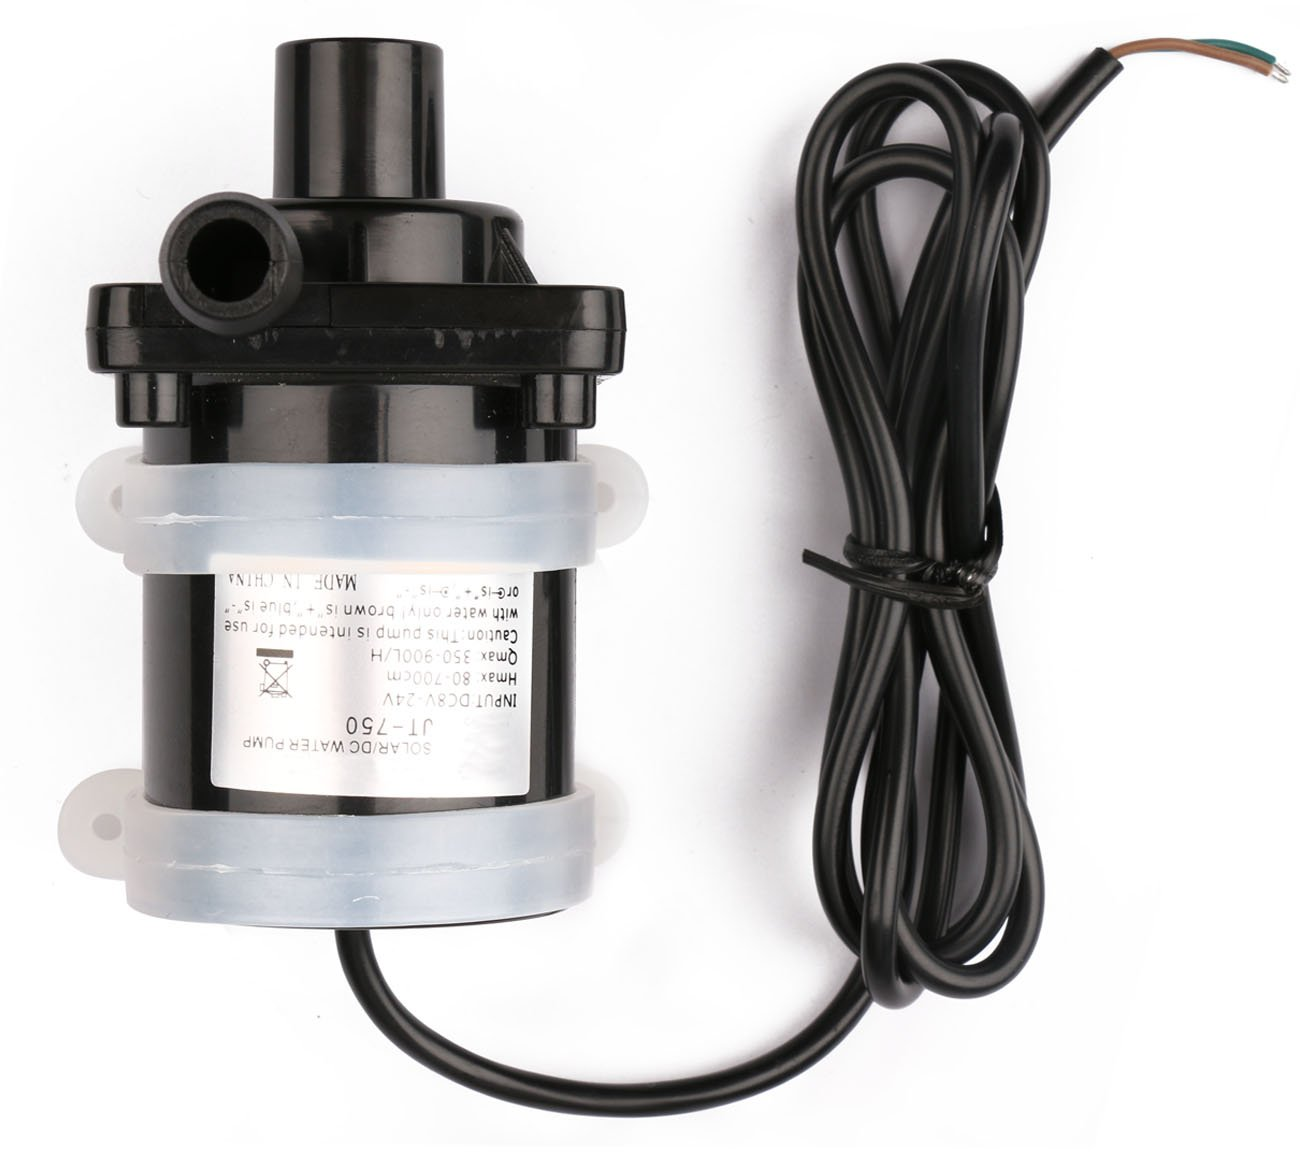 Driew Mini Submersible Water Pump, Brushless Water Pump 24V for Pond, Aquarium, Fish Tank Fountain Pumping, 900L/H